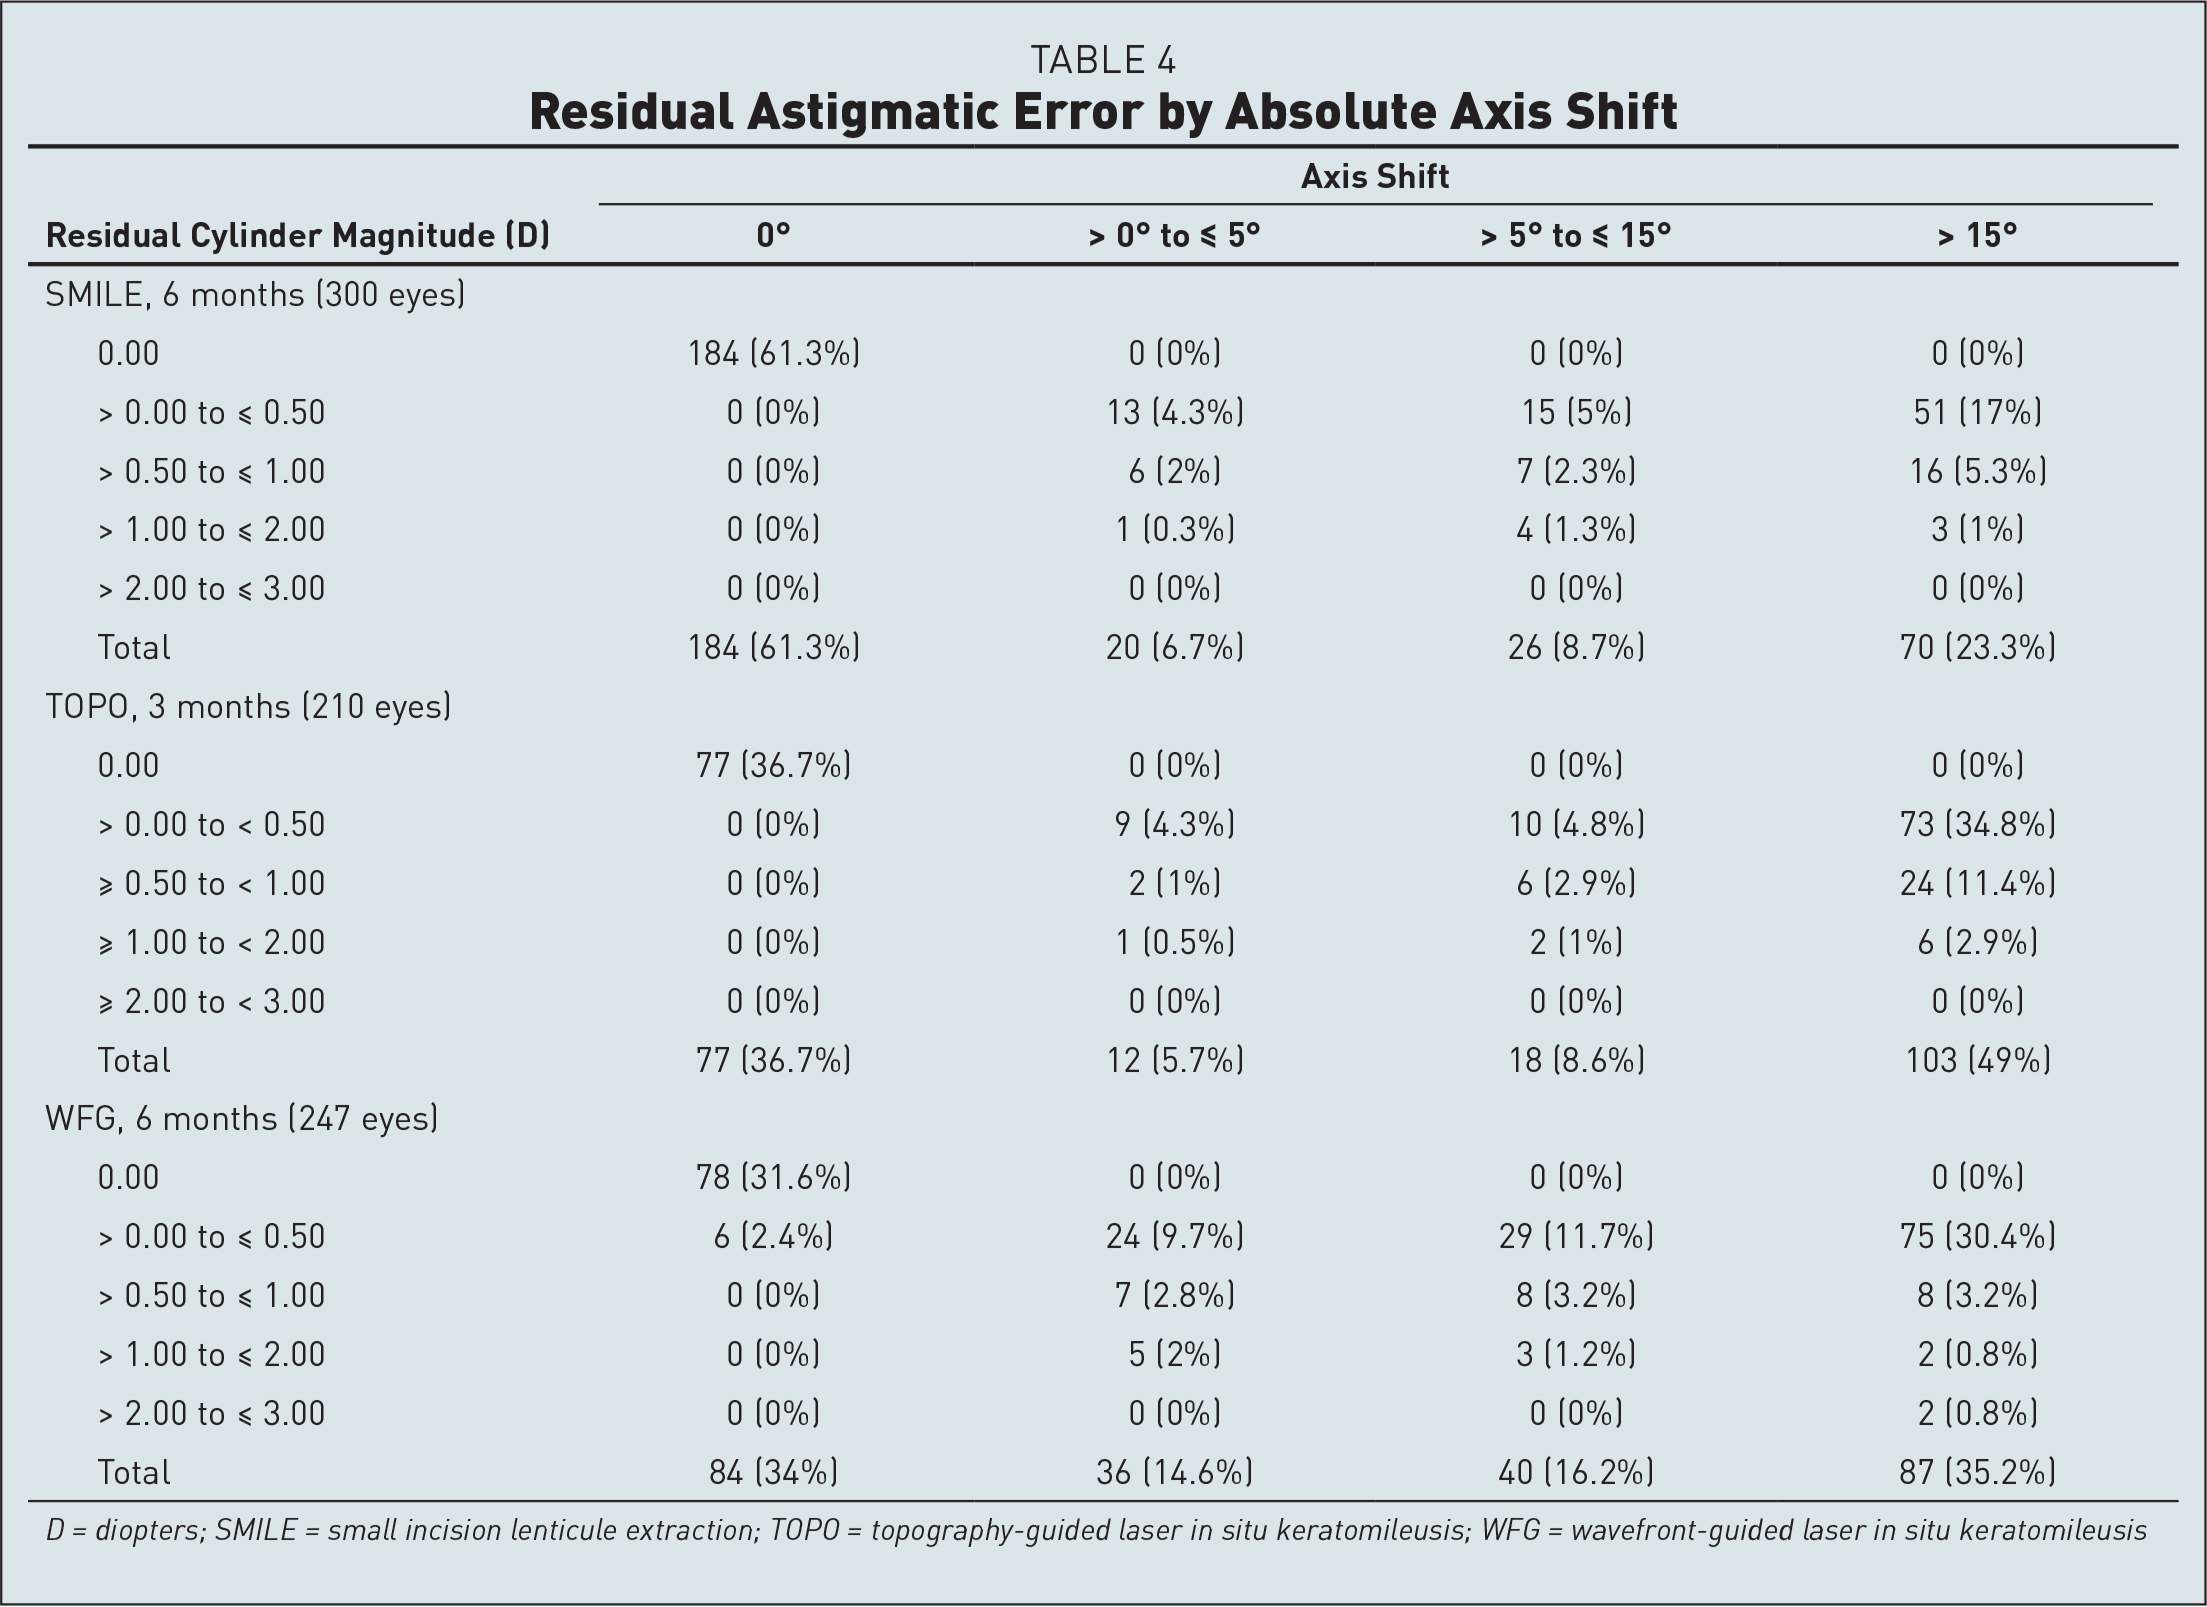 Residual Astigmatic Error by Absolute Axis Shift